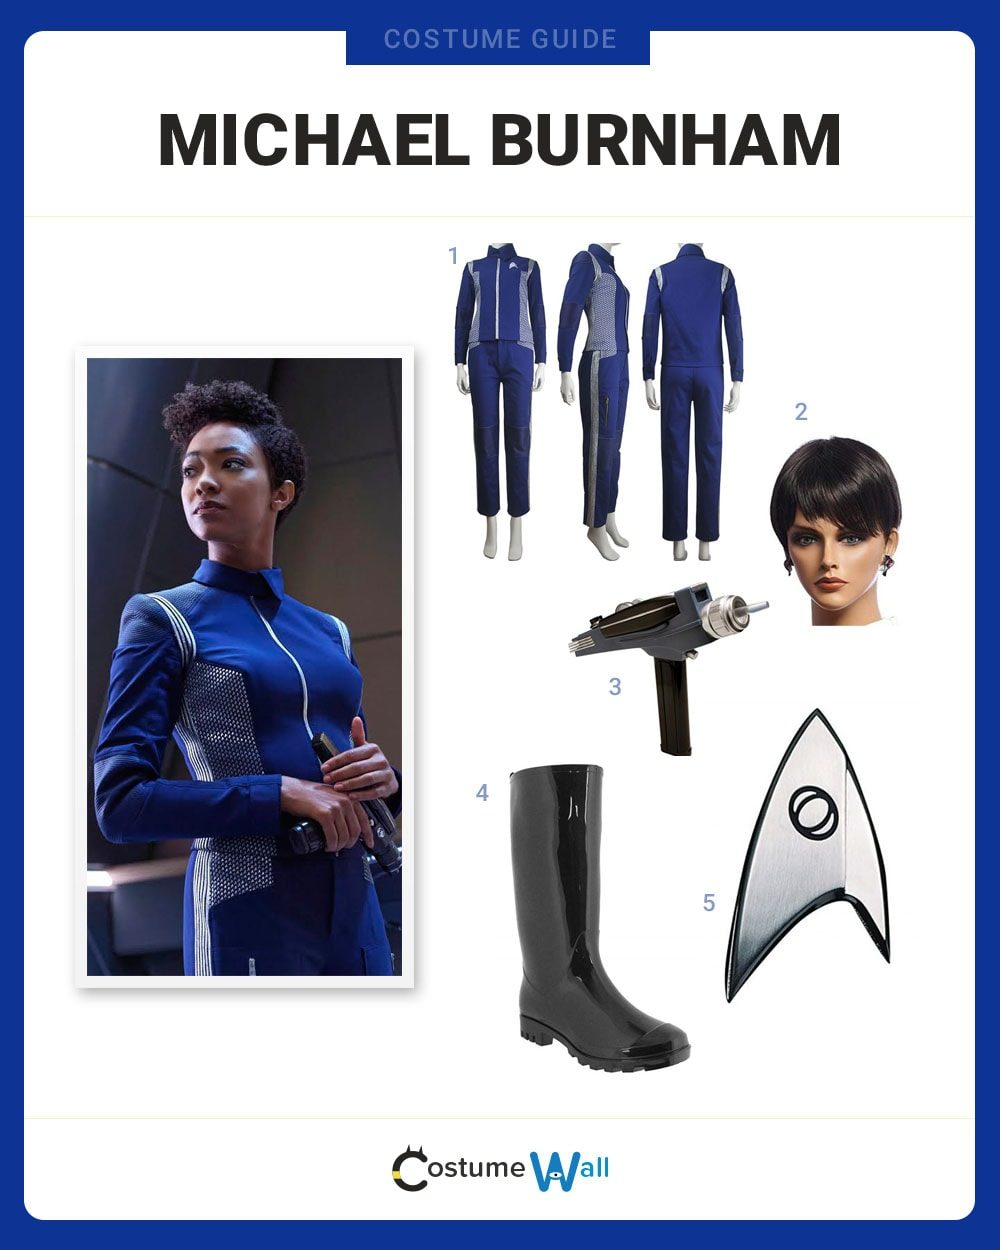 Michael Burnham Costume Guide